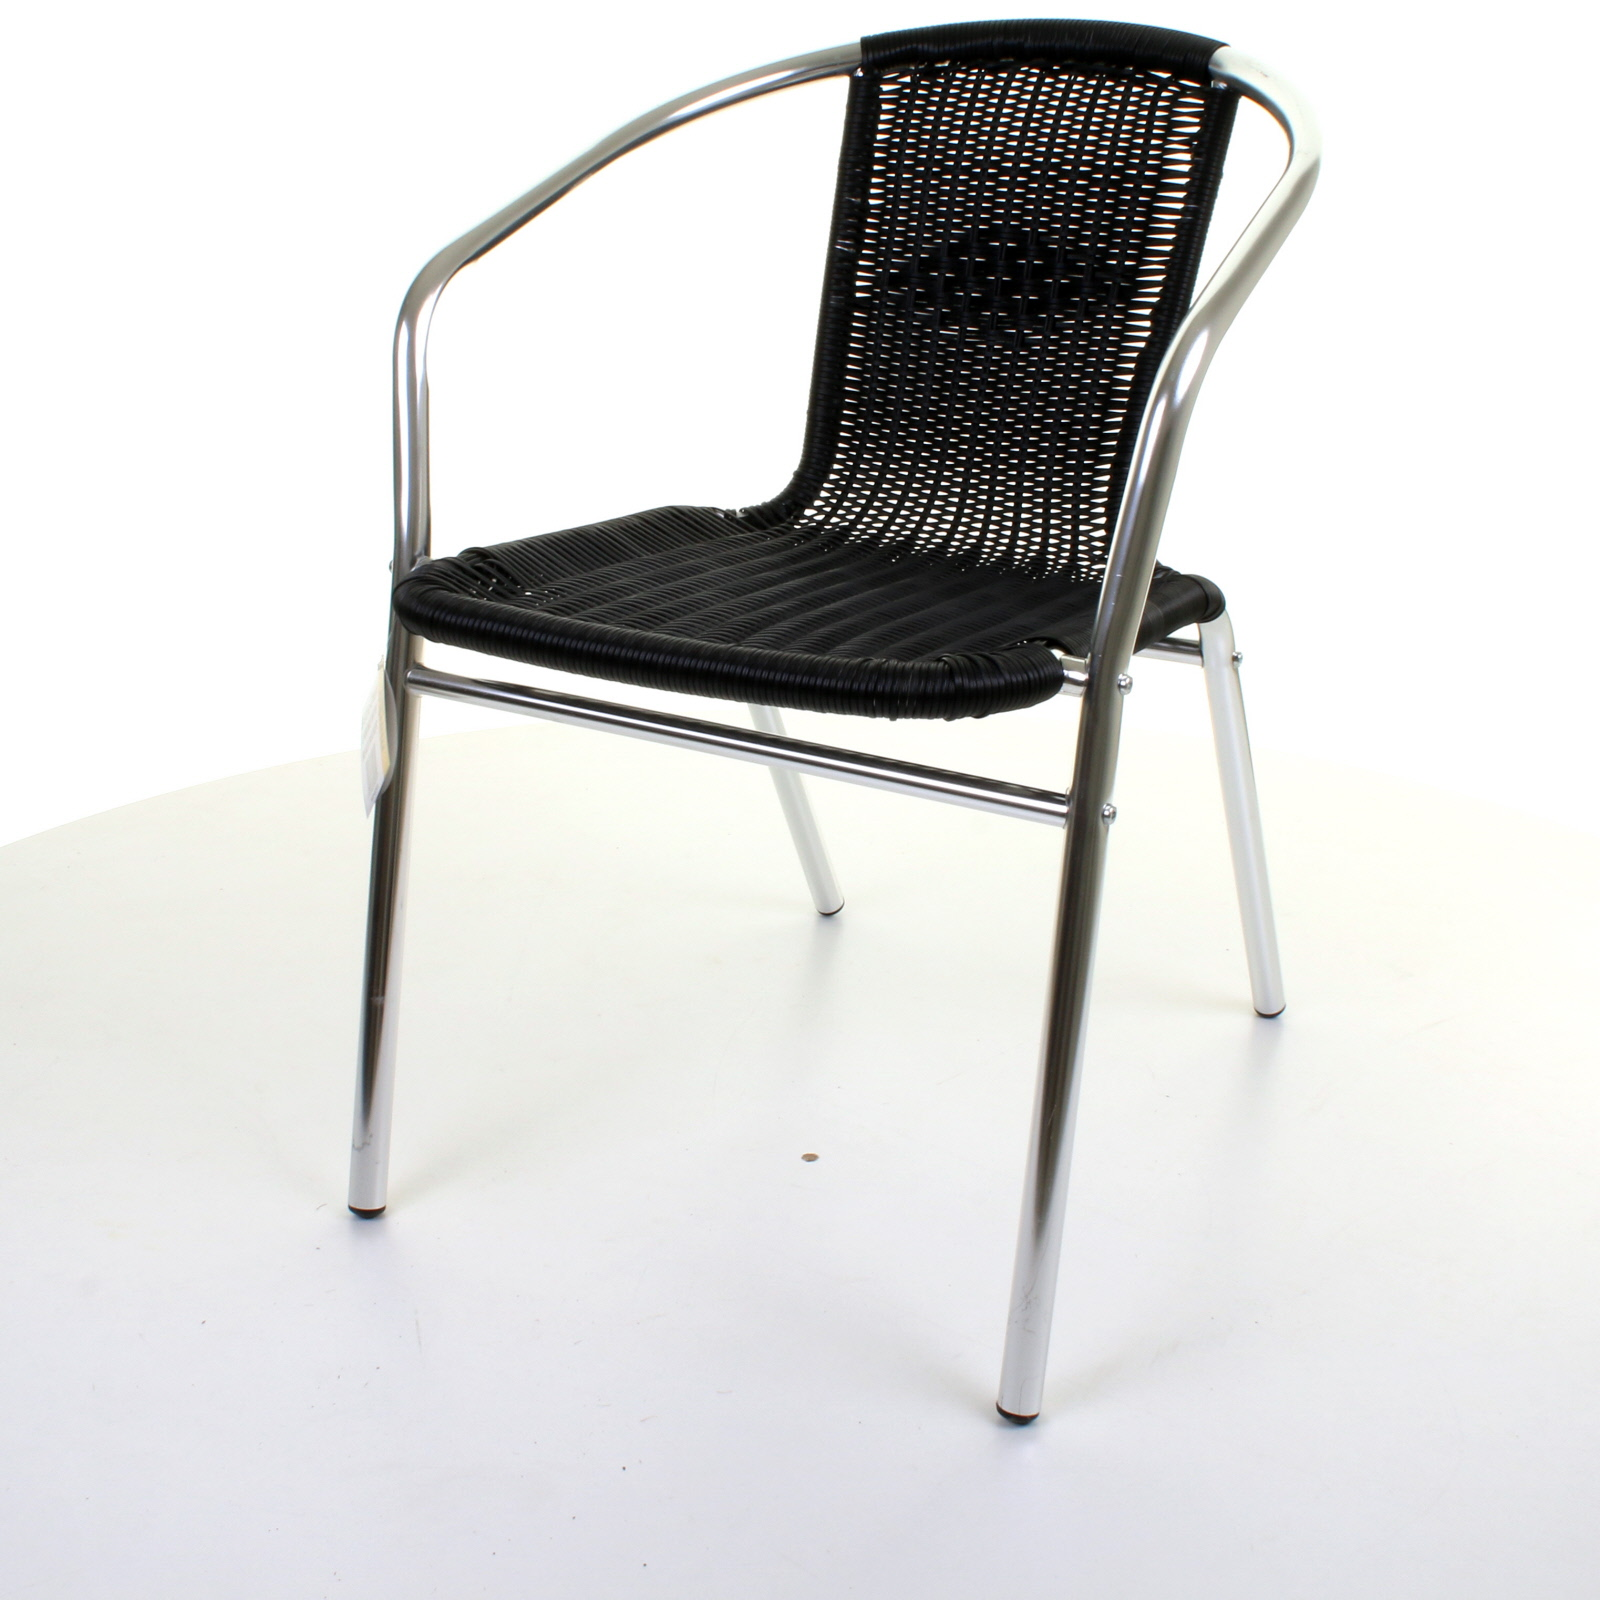 Aluminium Chrome Bistro Chair Outdoor Garden Patio Seating